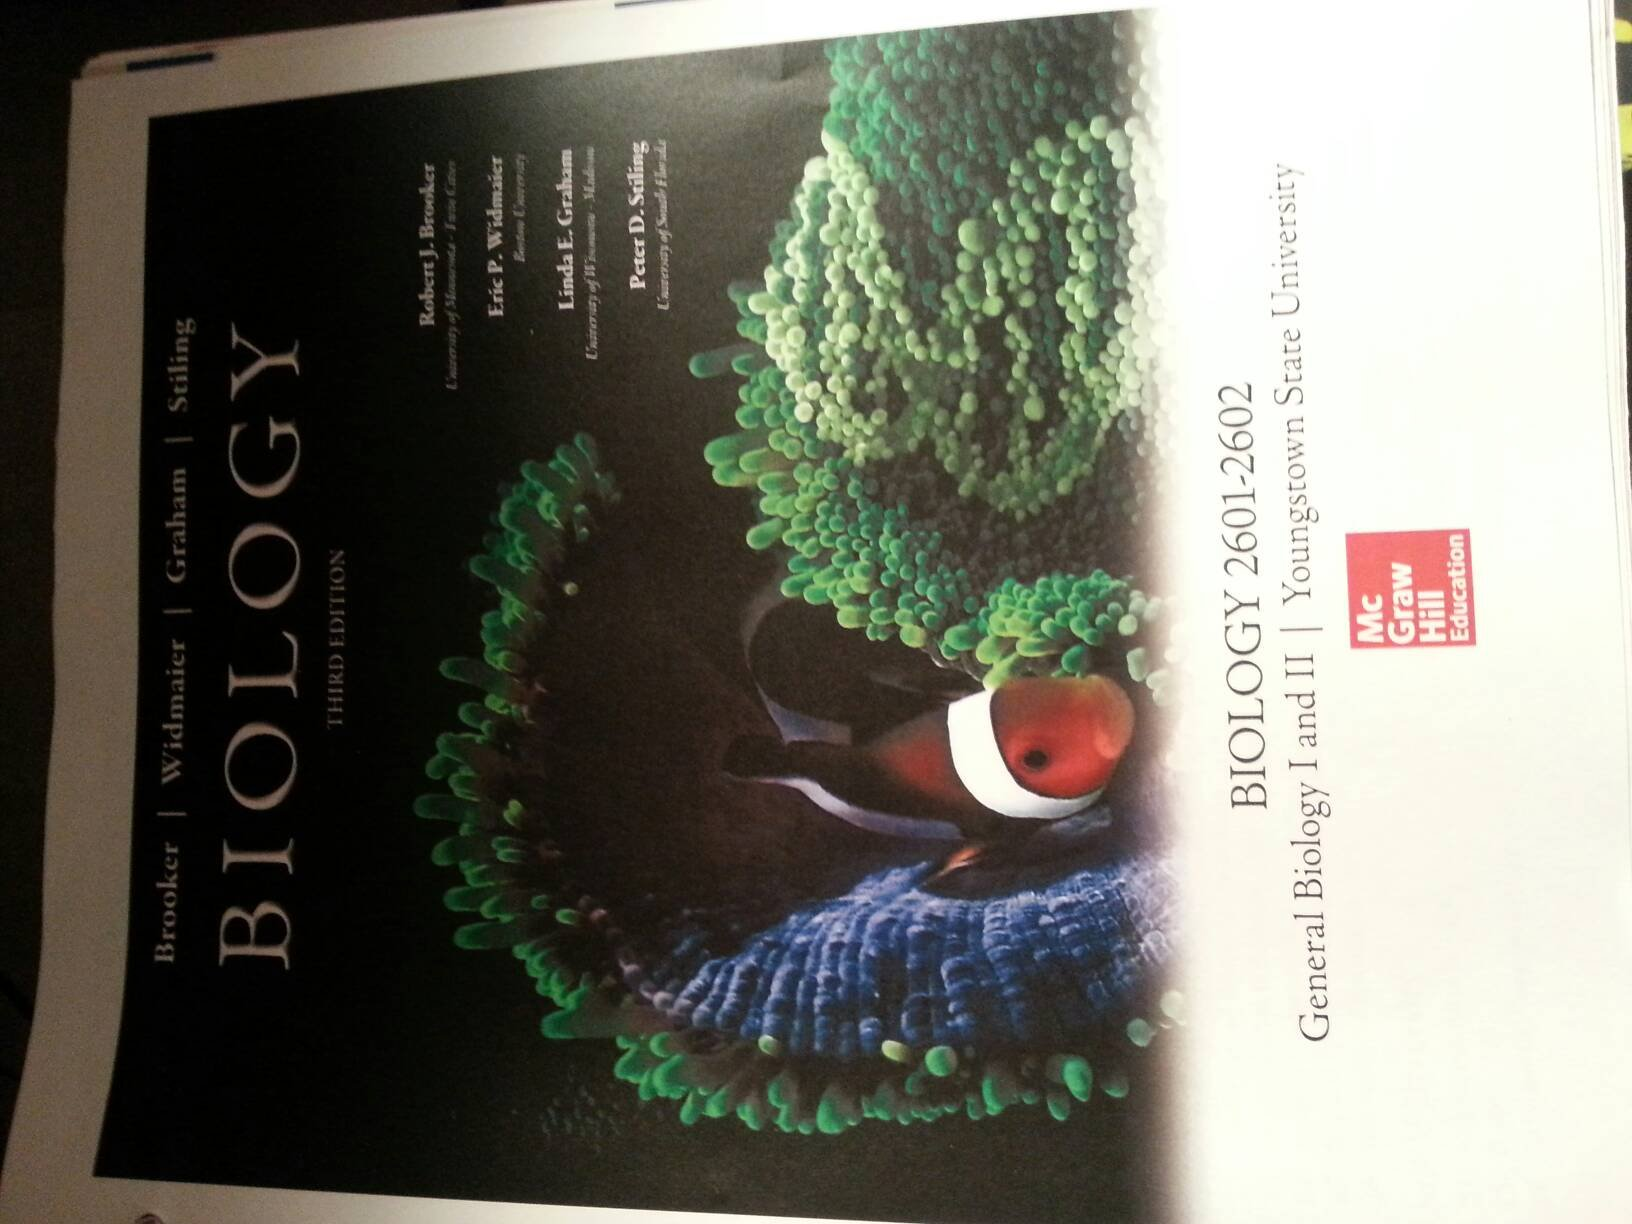 Biology third edition brooker widmaier graham stiling et al biology third edition brooker widmaier graham stiling et al et al brooker 9780078126888 amazon books fandeluxe